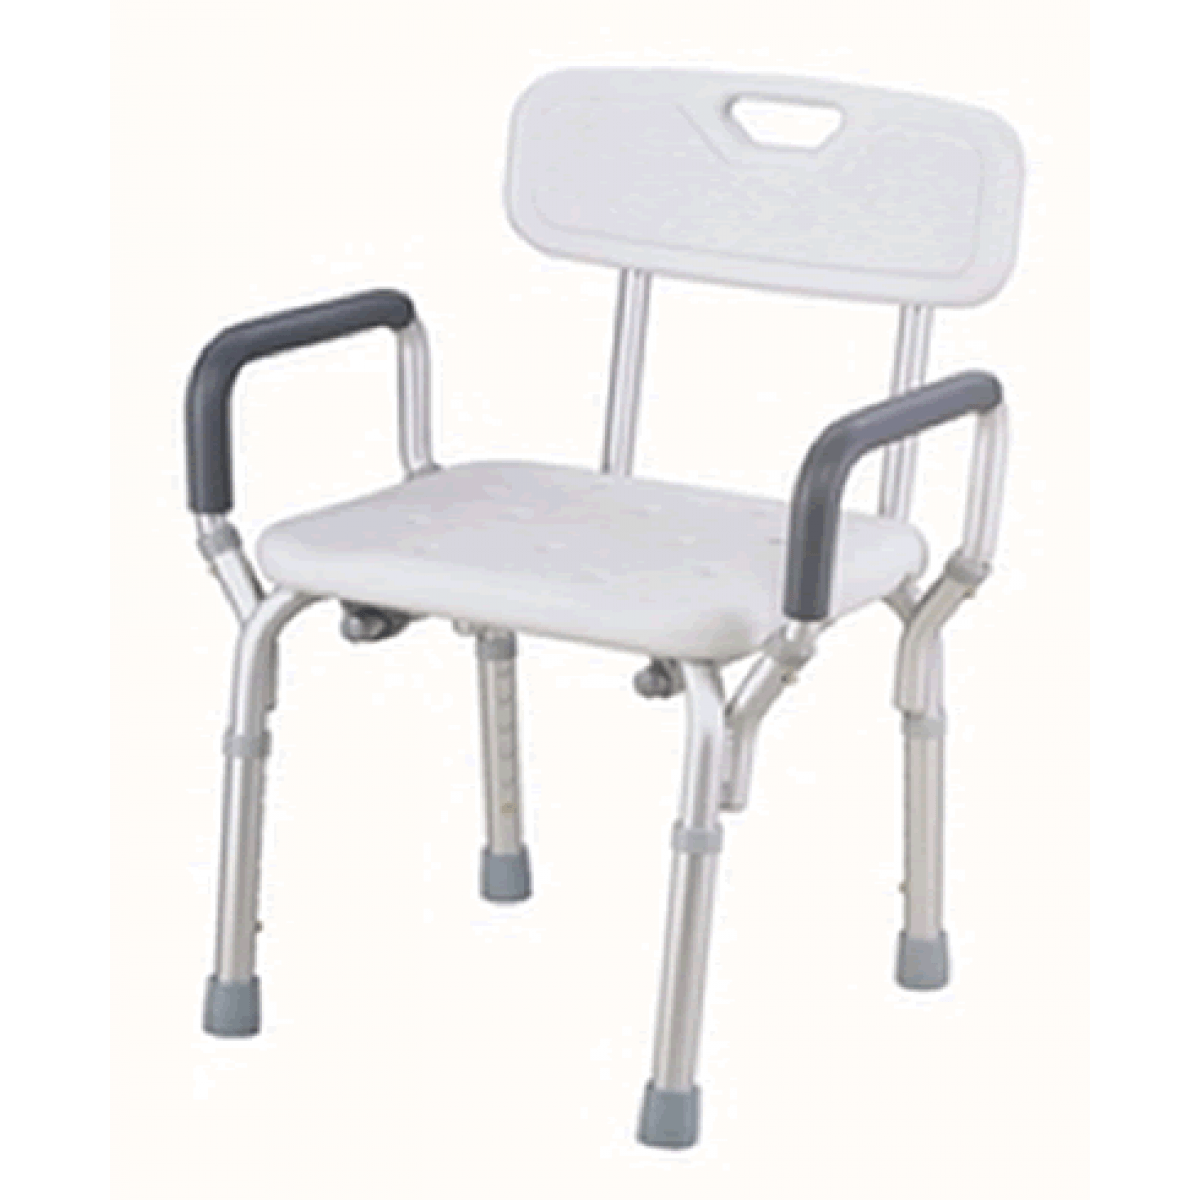 Shower Chair With Back Merits Shower Chair Bath Bench With Arms On Sale With